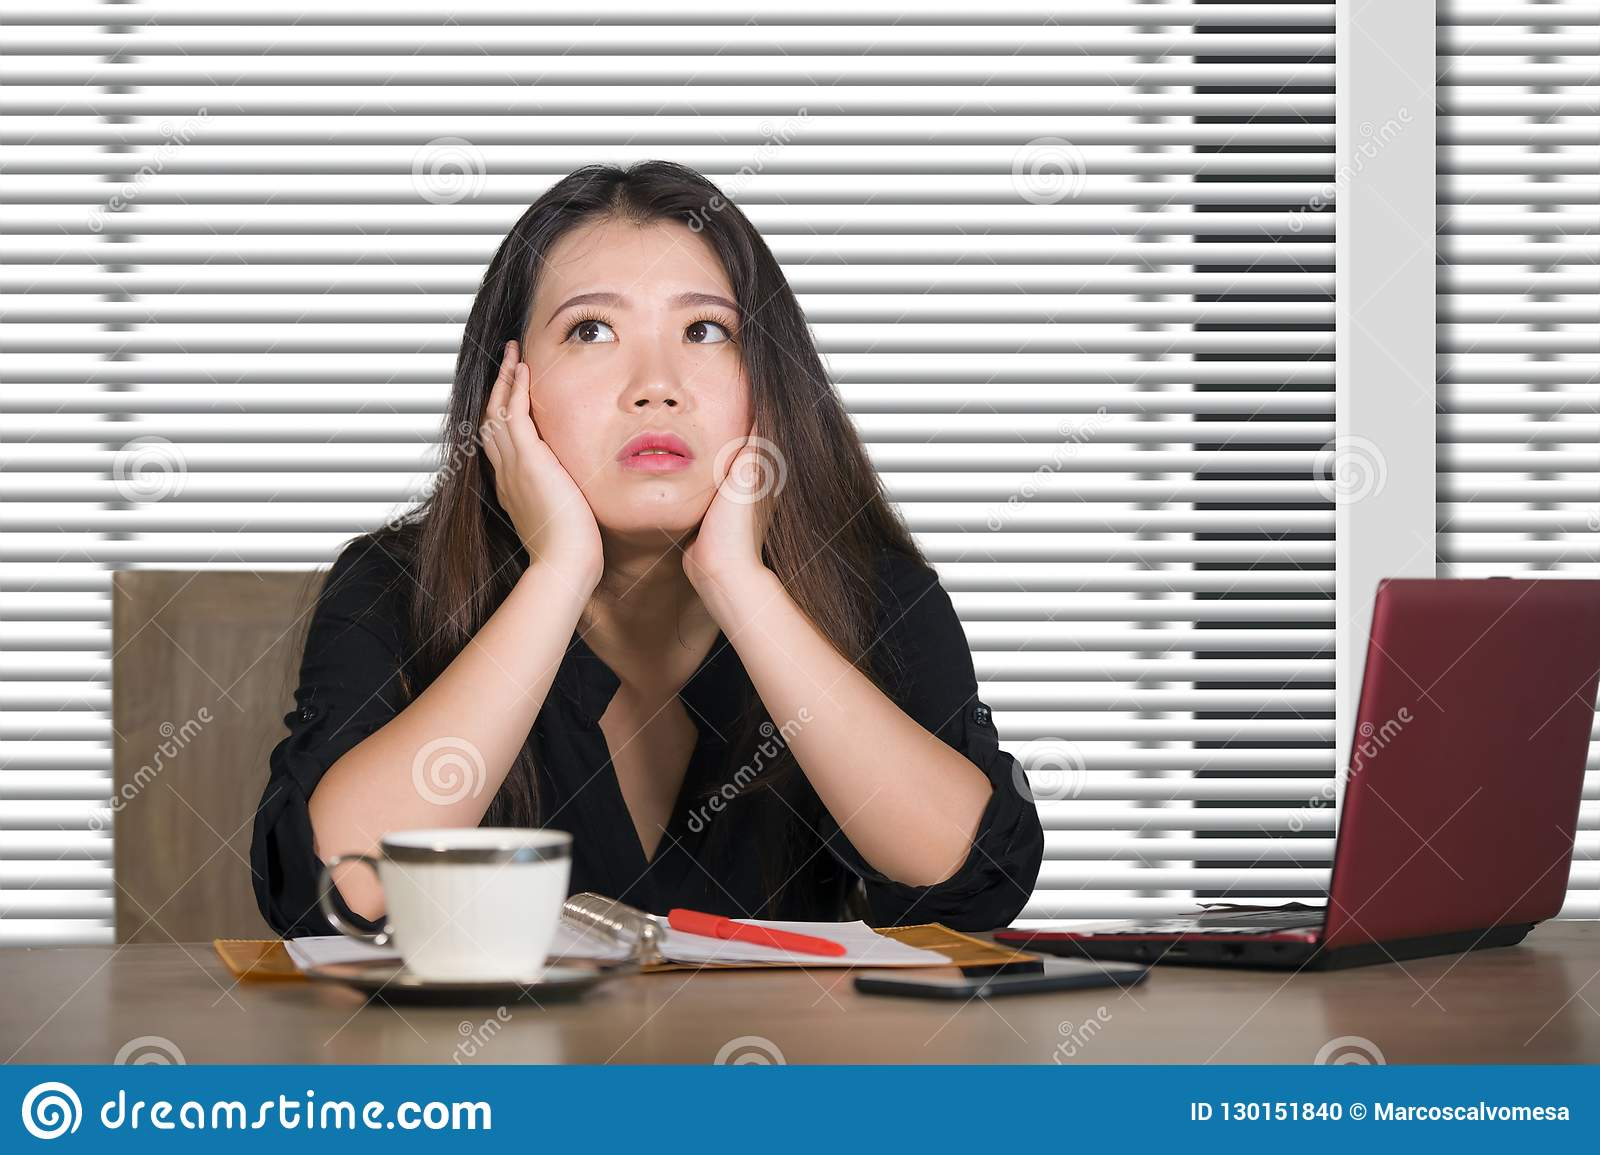 Corporate portrait of young attractive sad and stressed Asian Korean woman working at company office computer desk feeling depress